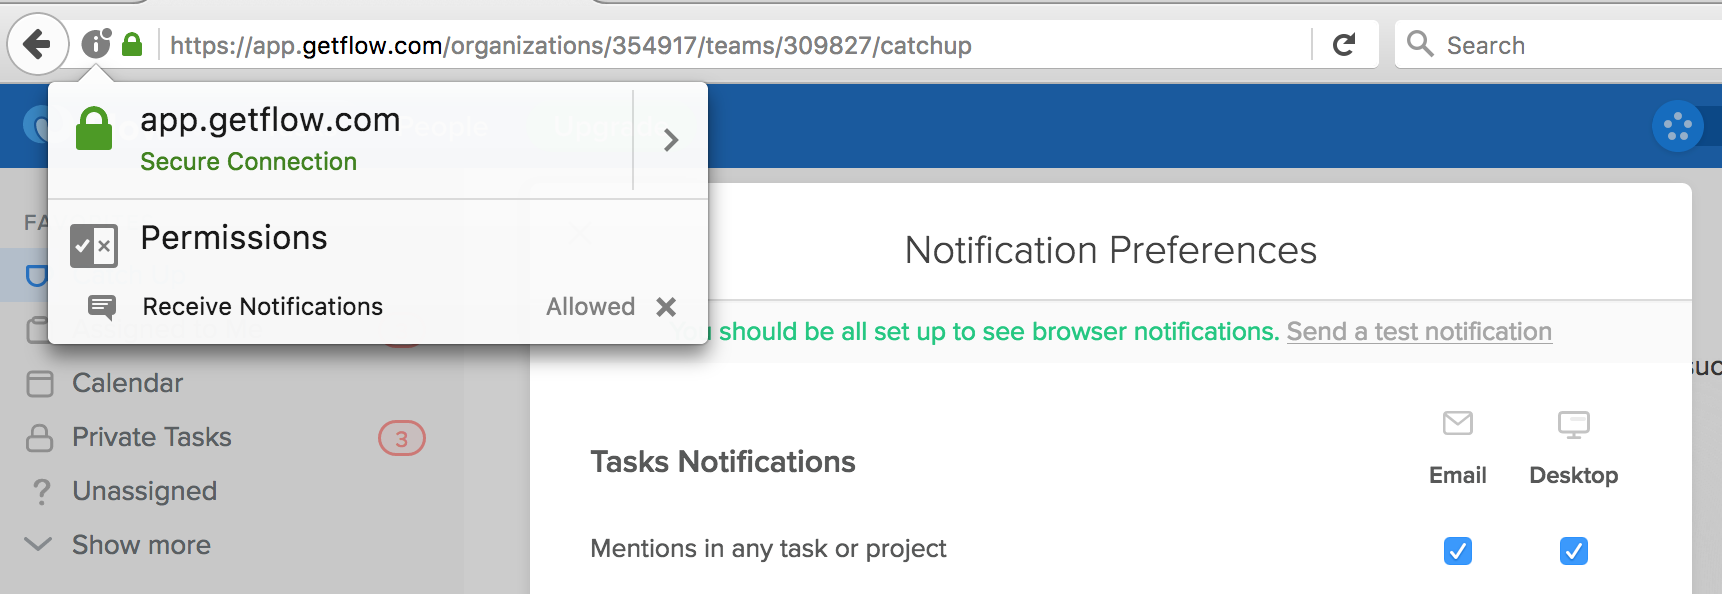 blocked-notifications.5.png?mtime=20170829122945#asset:4388